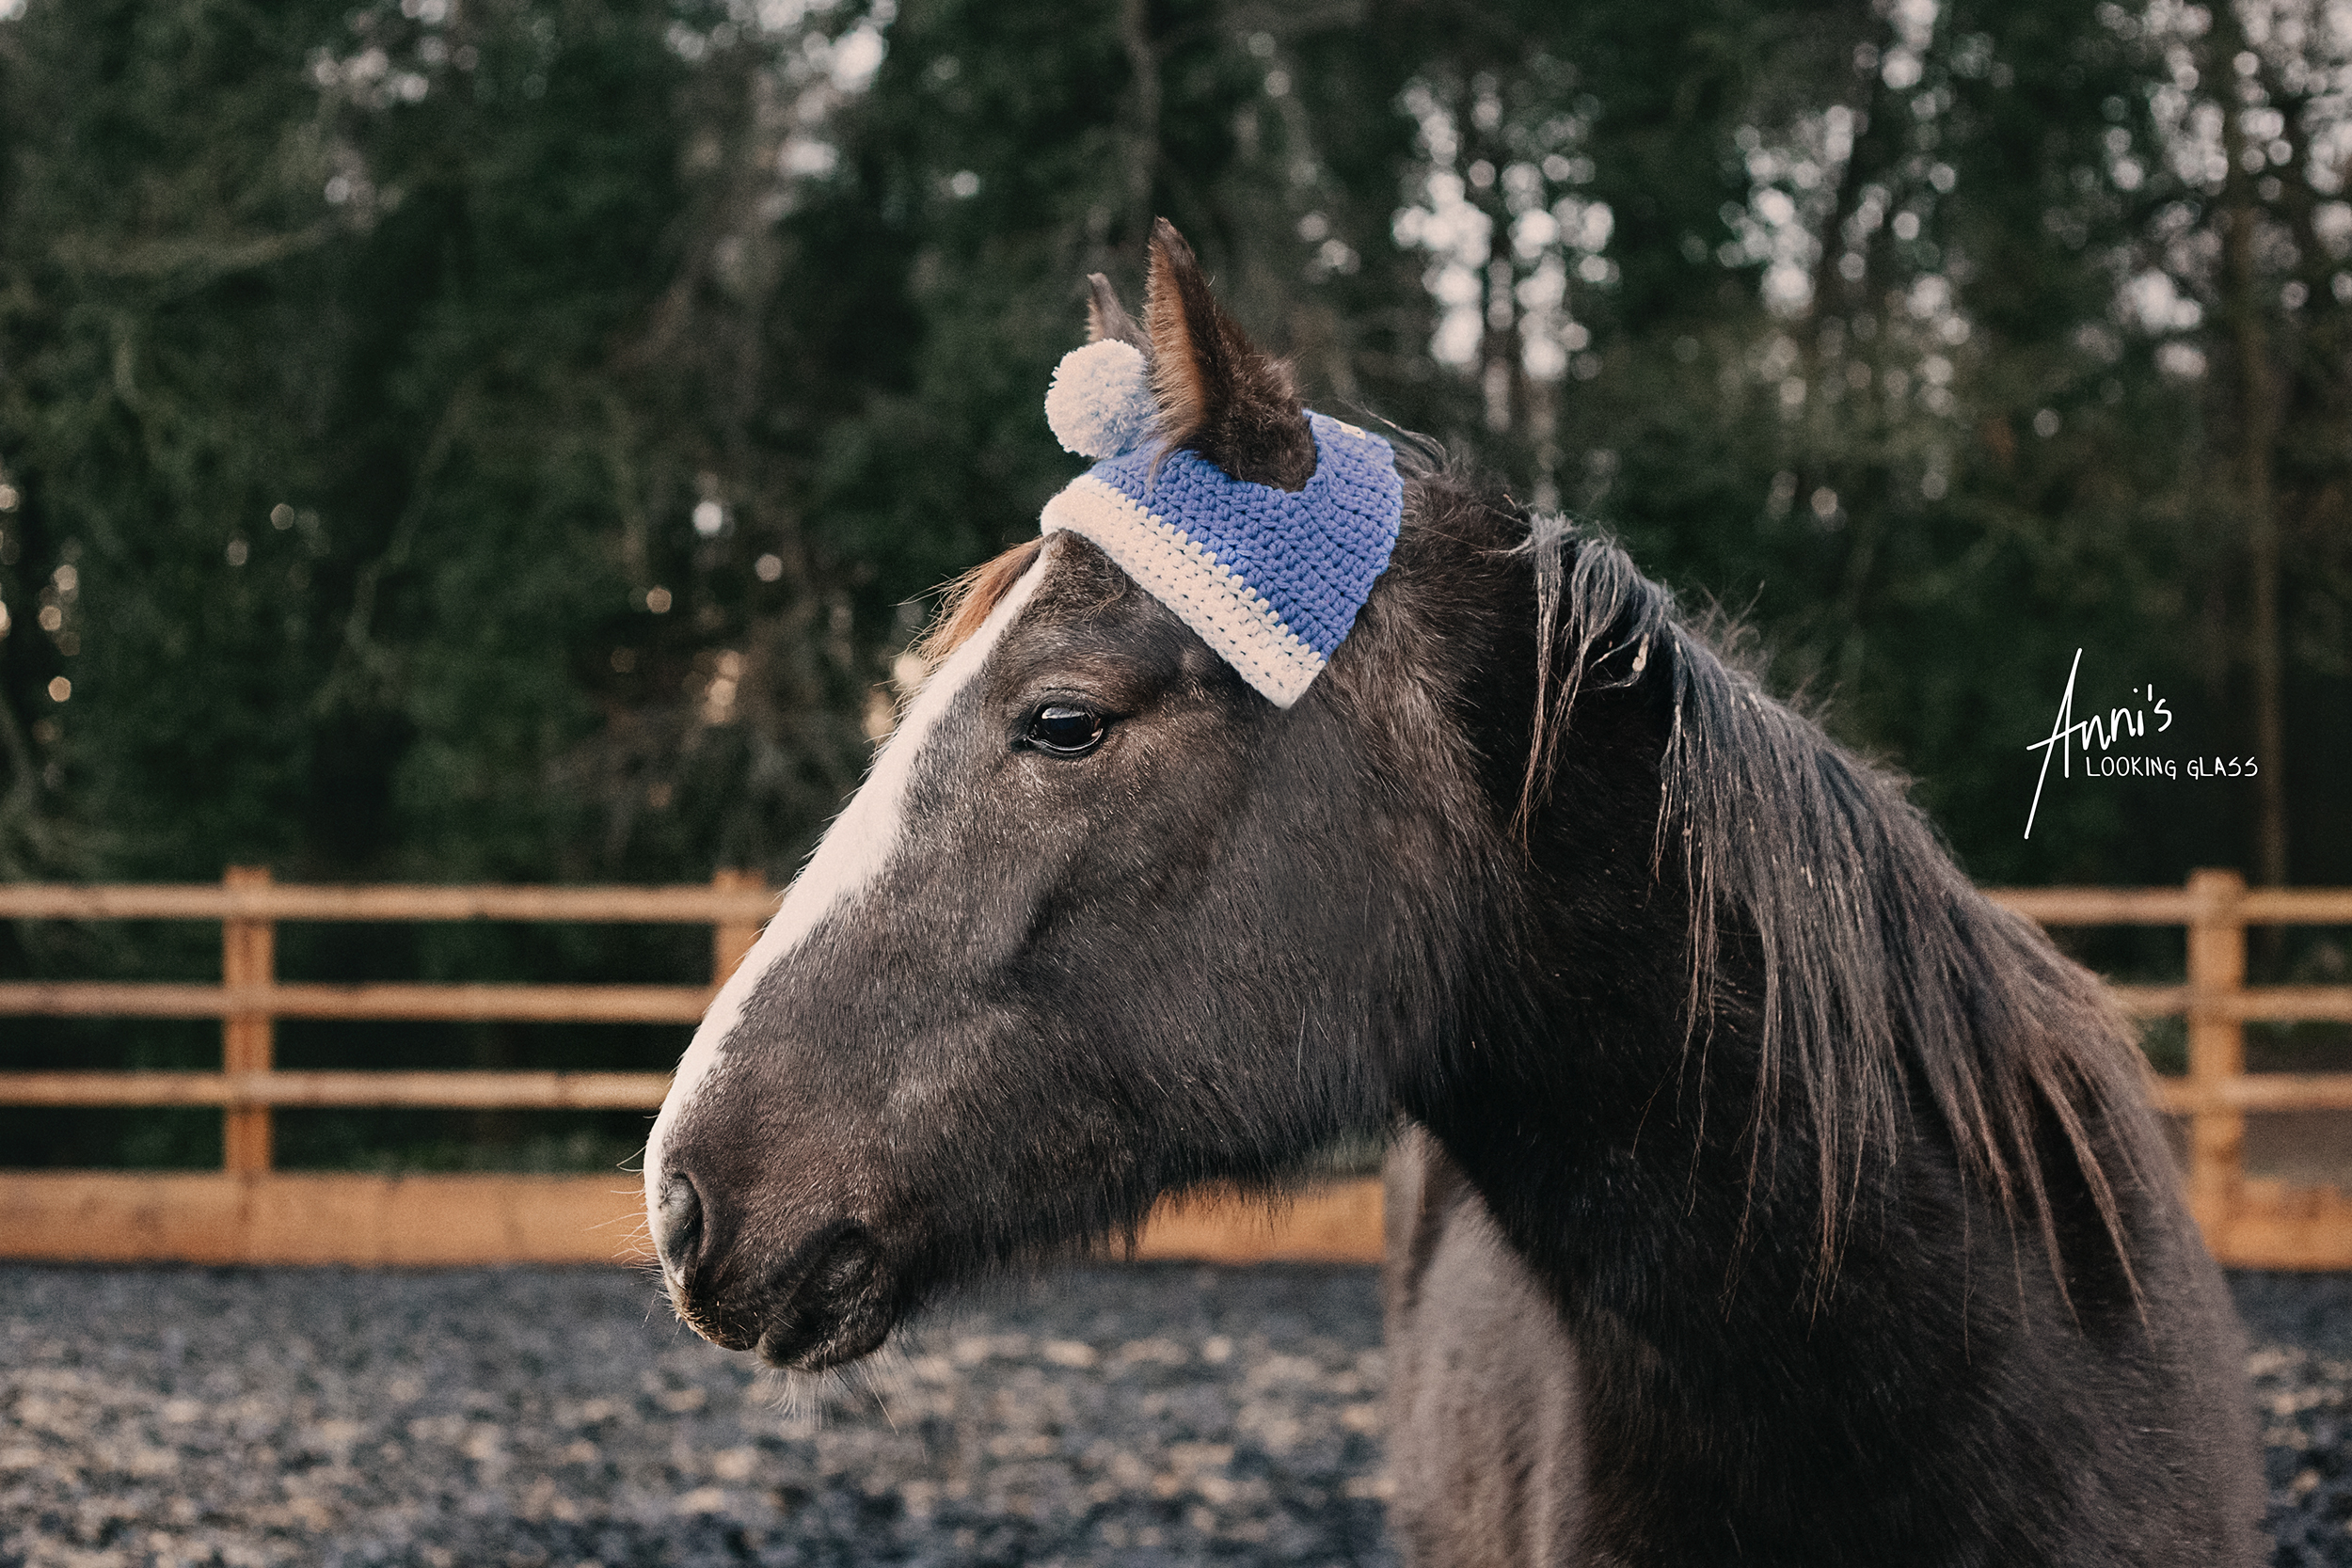 A strawberry roan Connermara Pony mix wearing a blue knitted hat